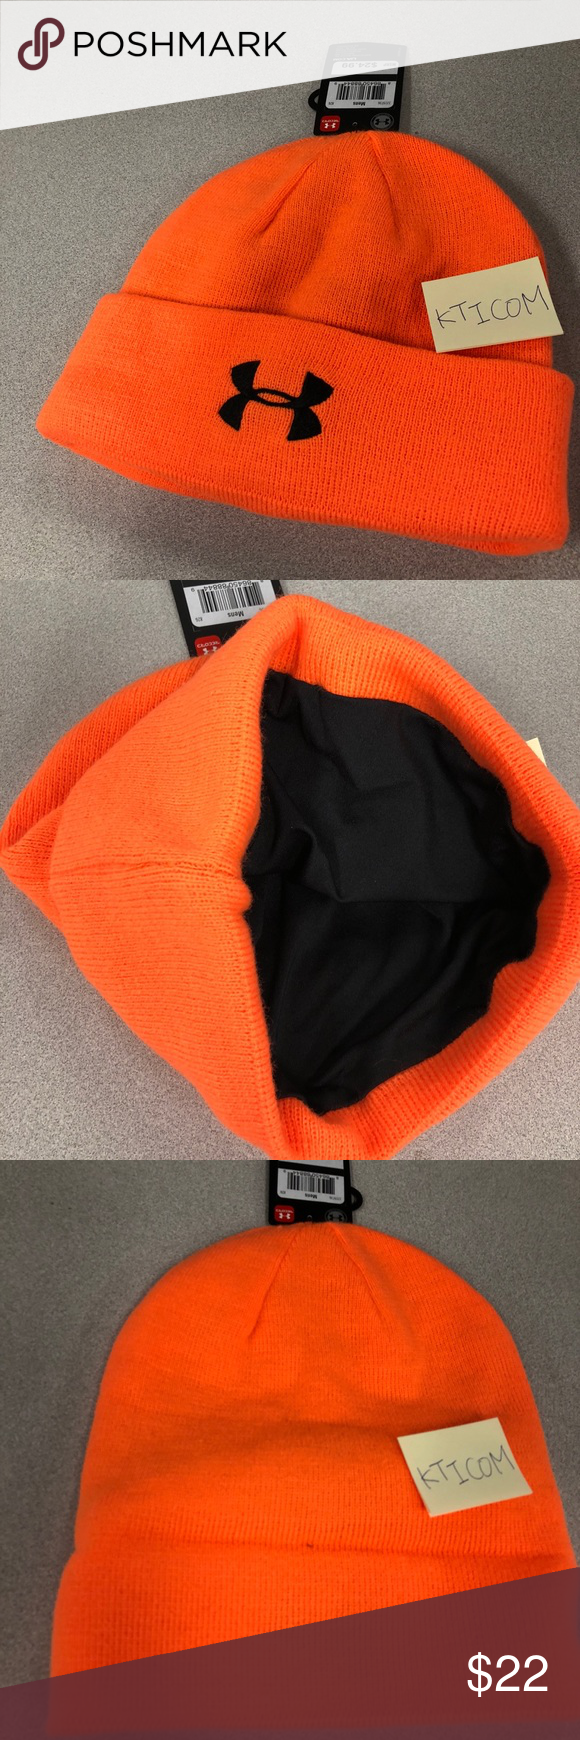 724c454fc2959 New Under Armour Men s Tactical Stealth Beanie NWT